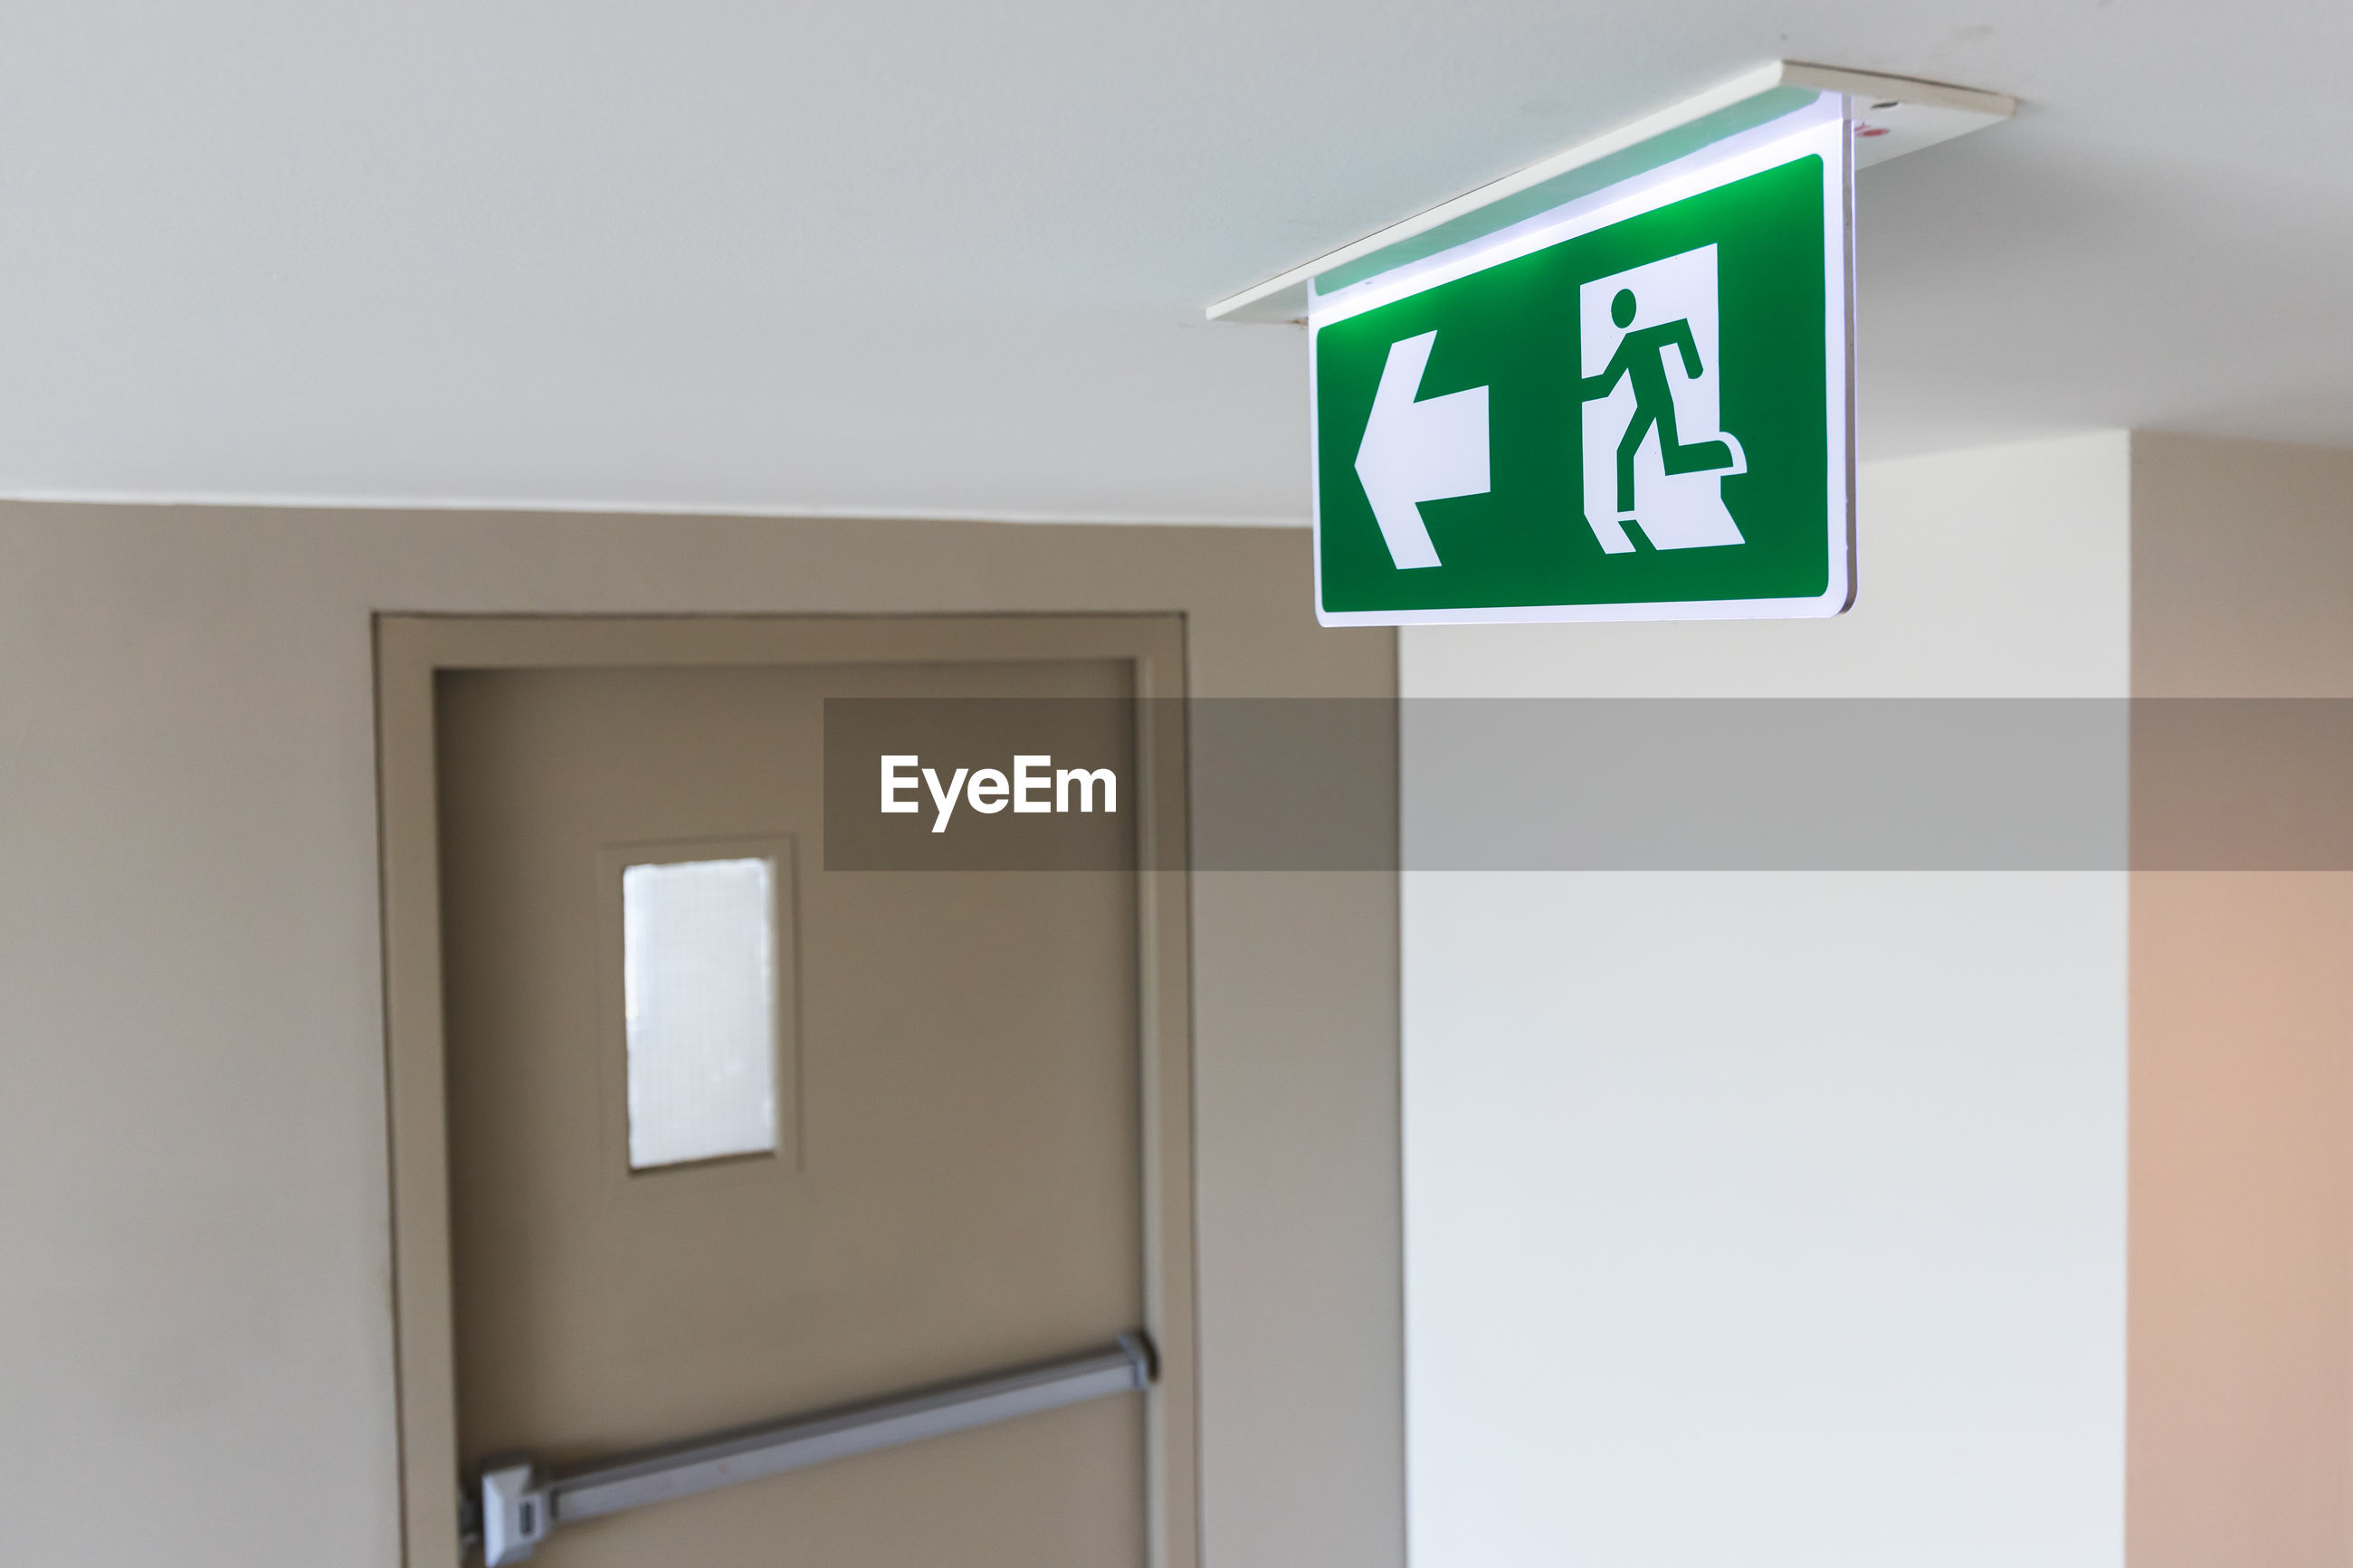 Close up view of the fire exit sign and the fire exit door that is closed in the building